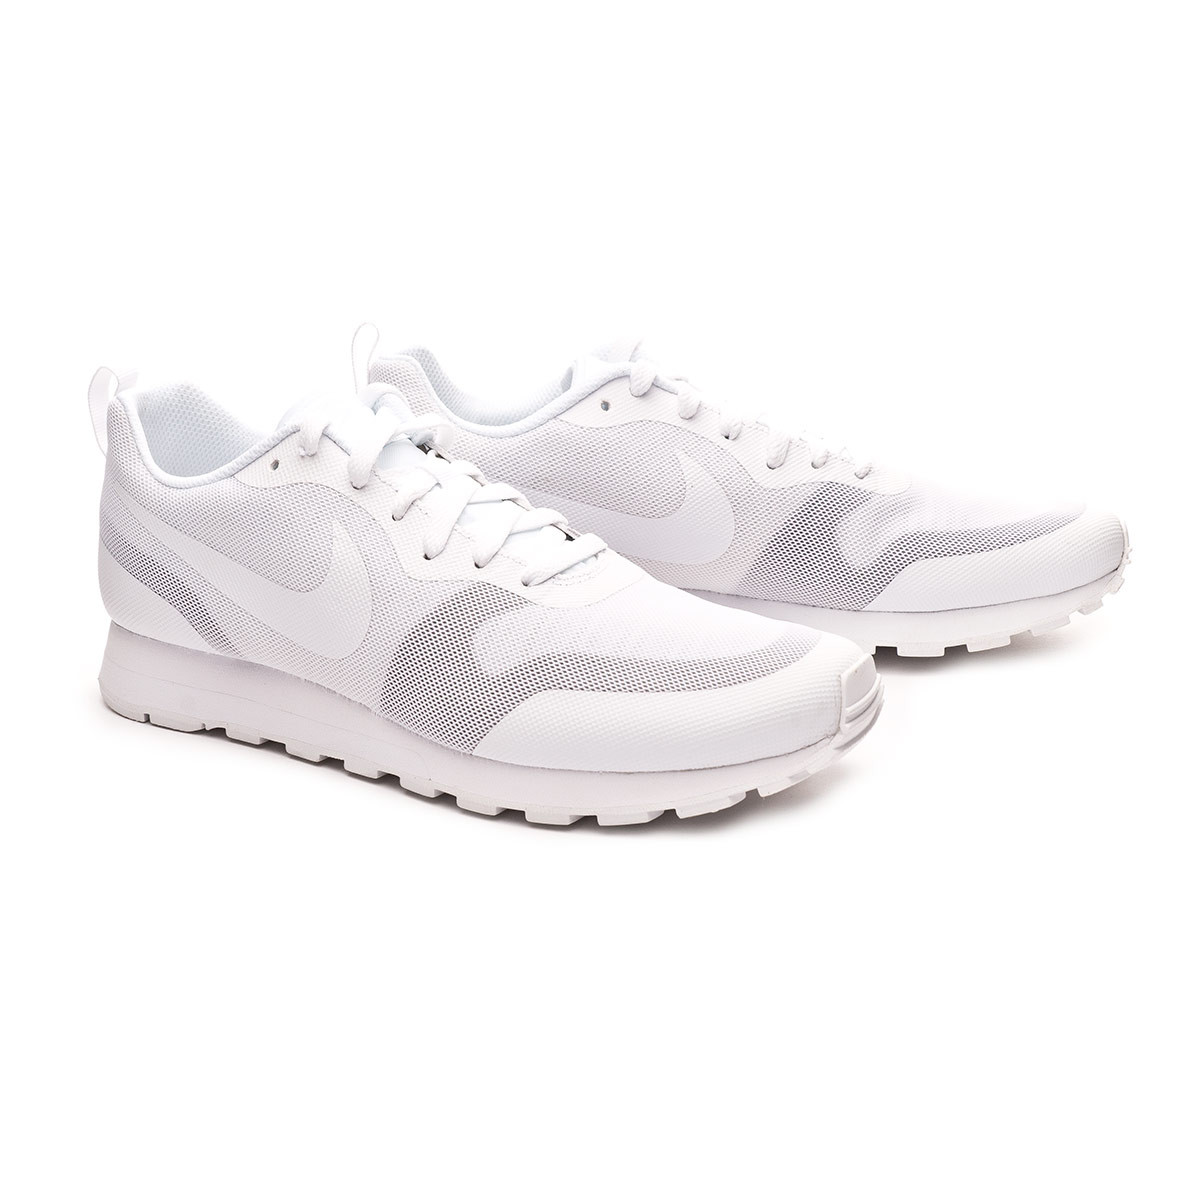 d34a0baff8b Trainers Nike MD Runner 2 19 White-Platinum tint - Football store ...